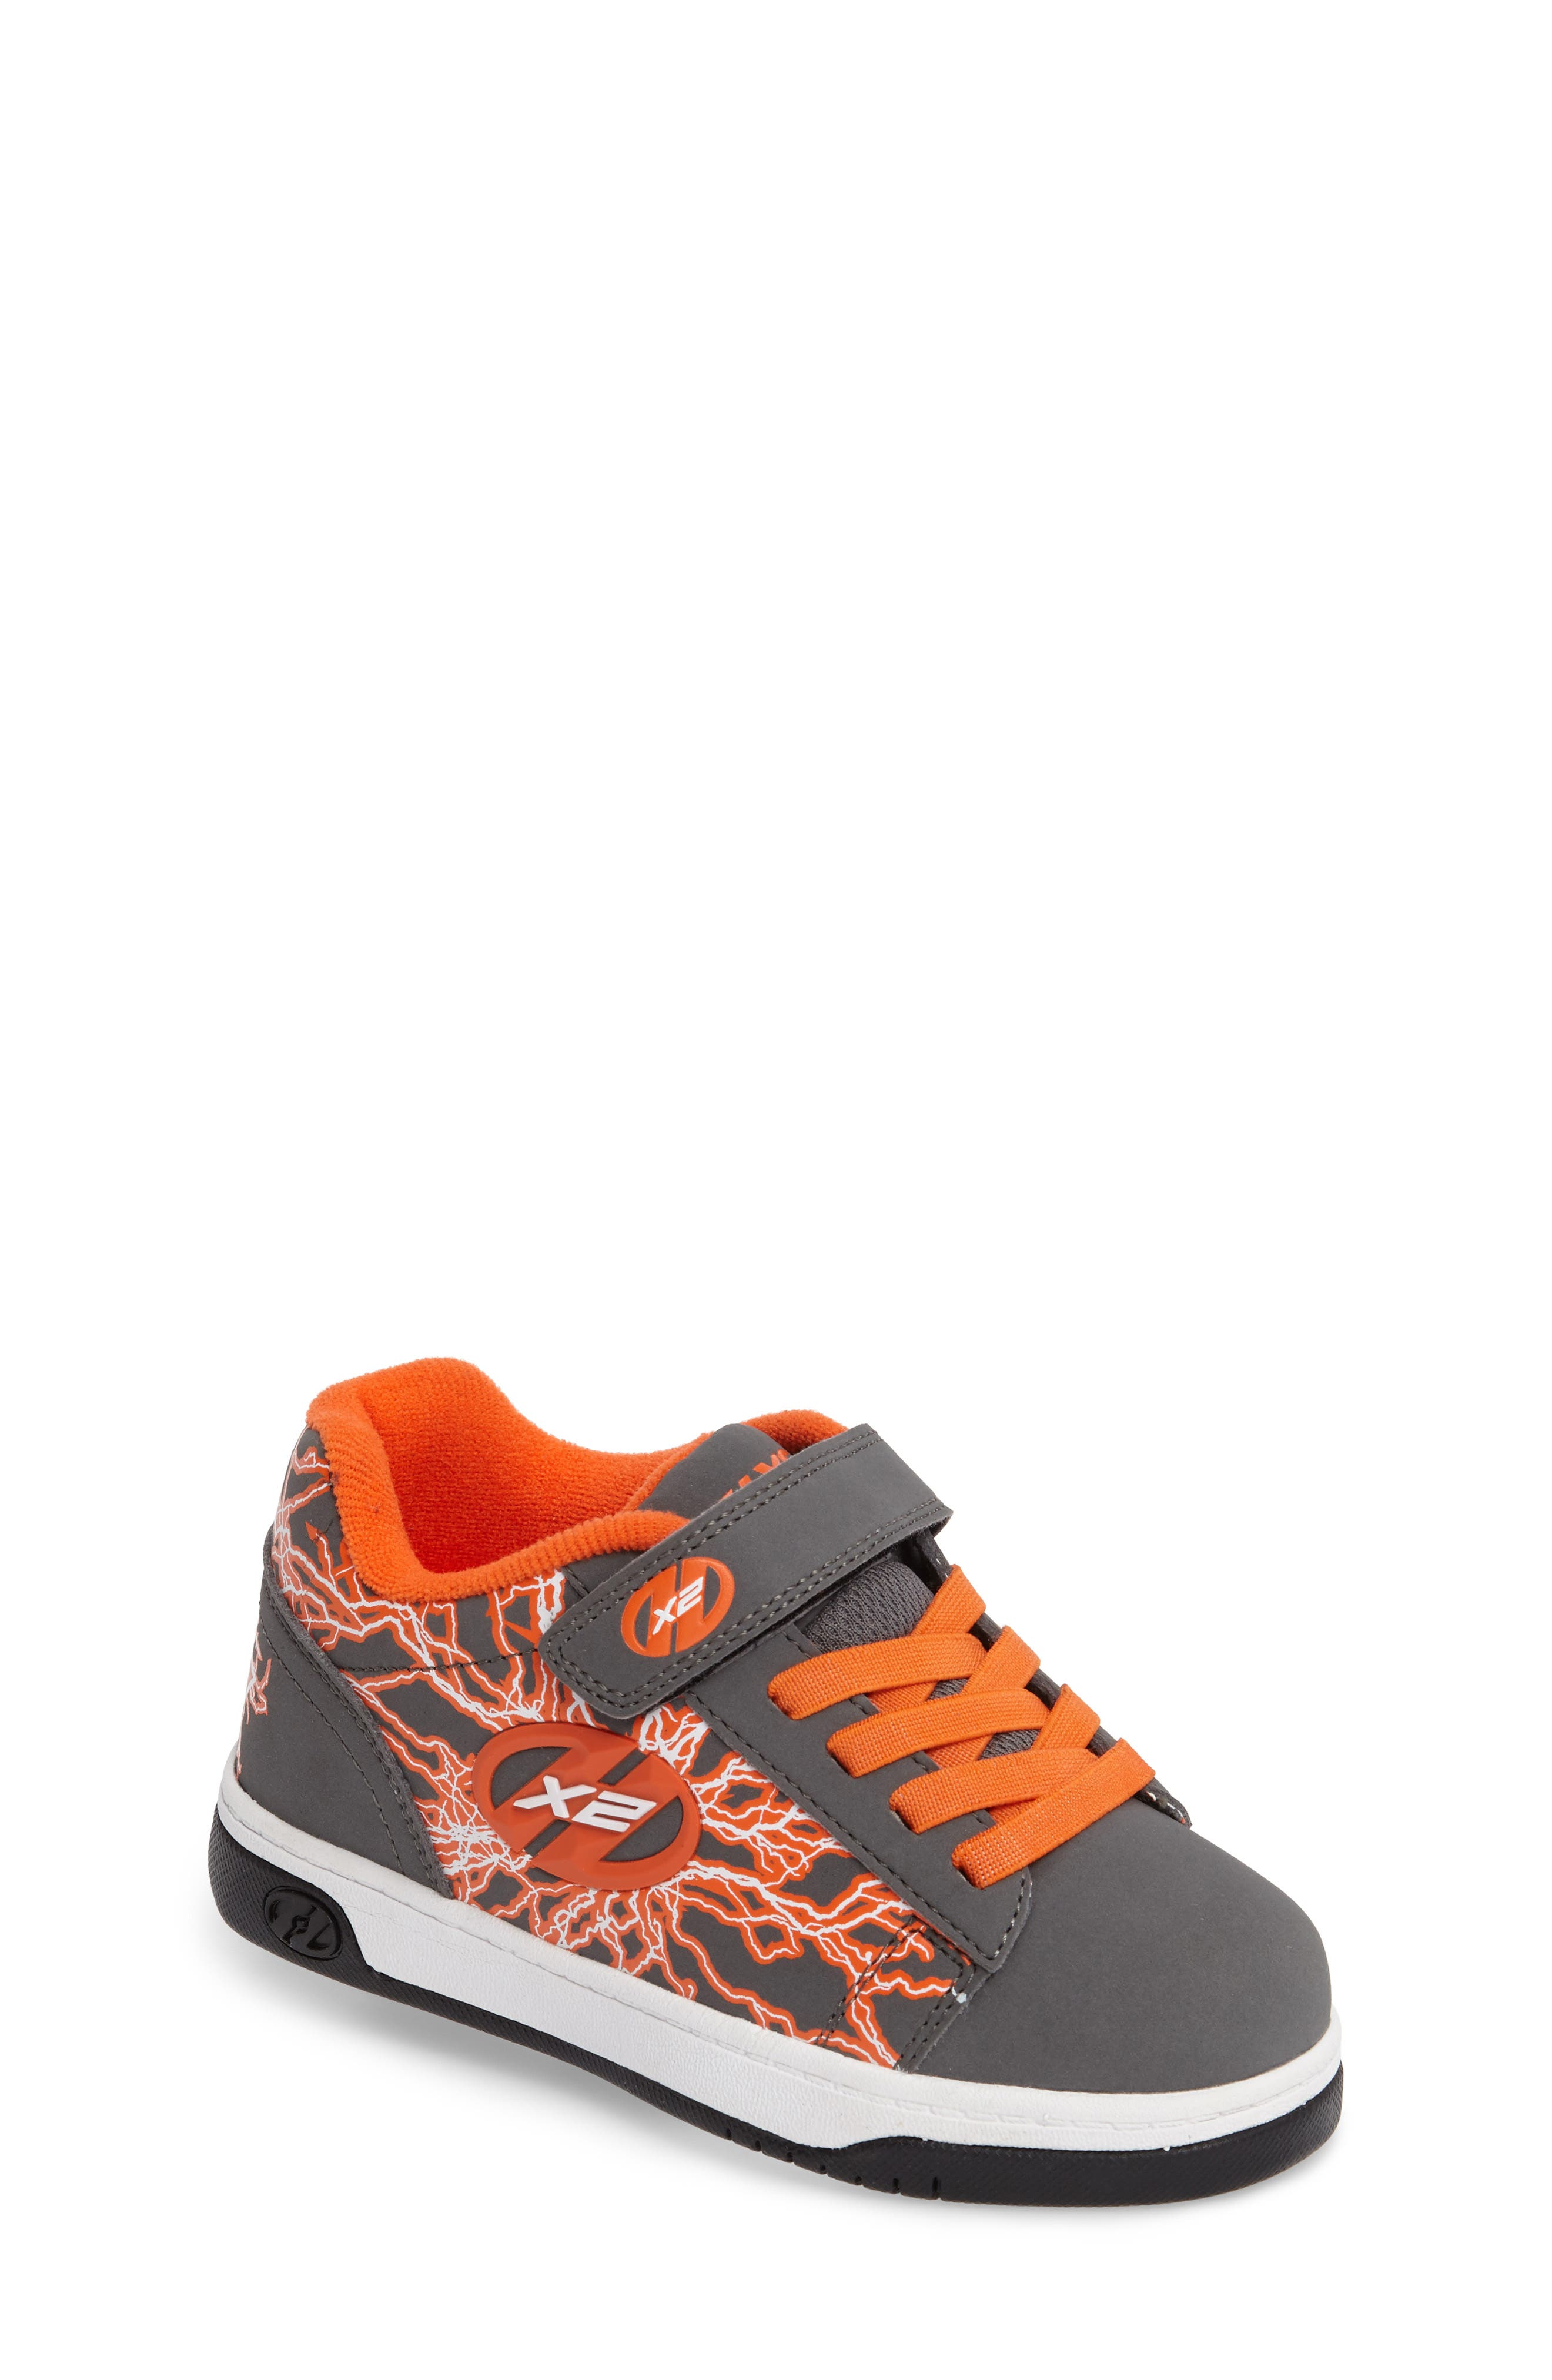 'Dual Up X2' Sneaker,                             Main thumbnail 1, color,                             Charcoal/ Orange/ Electricity